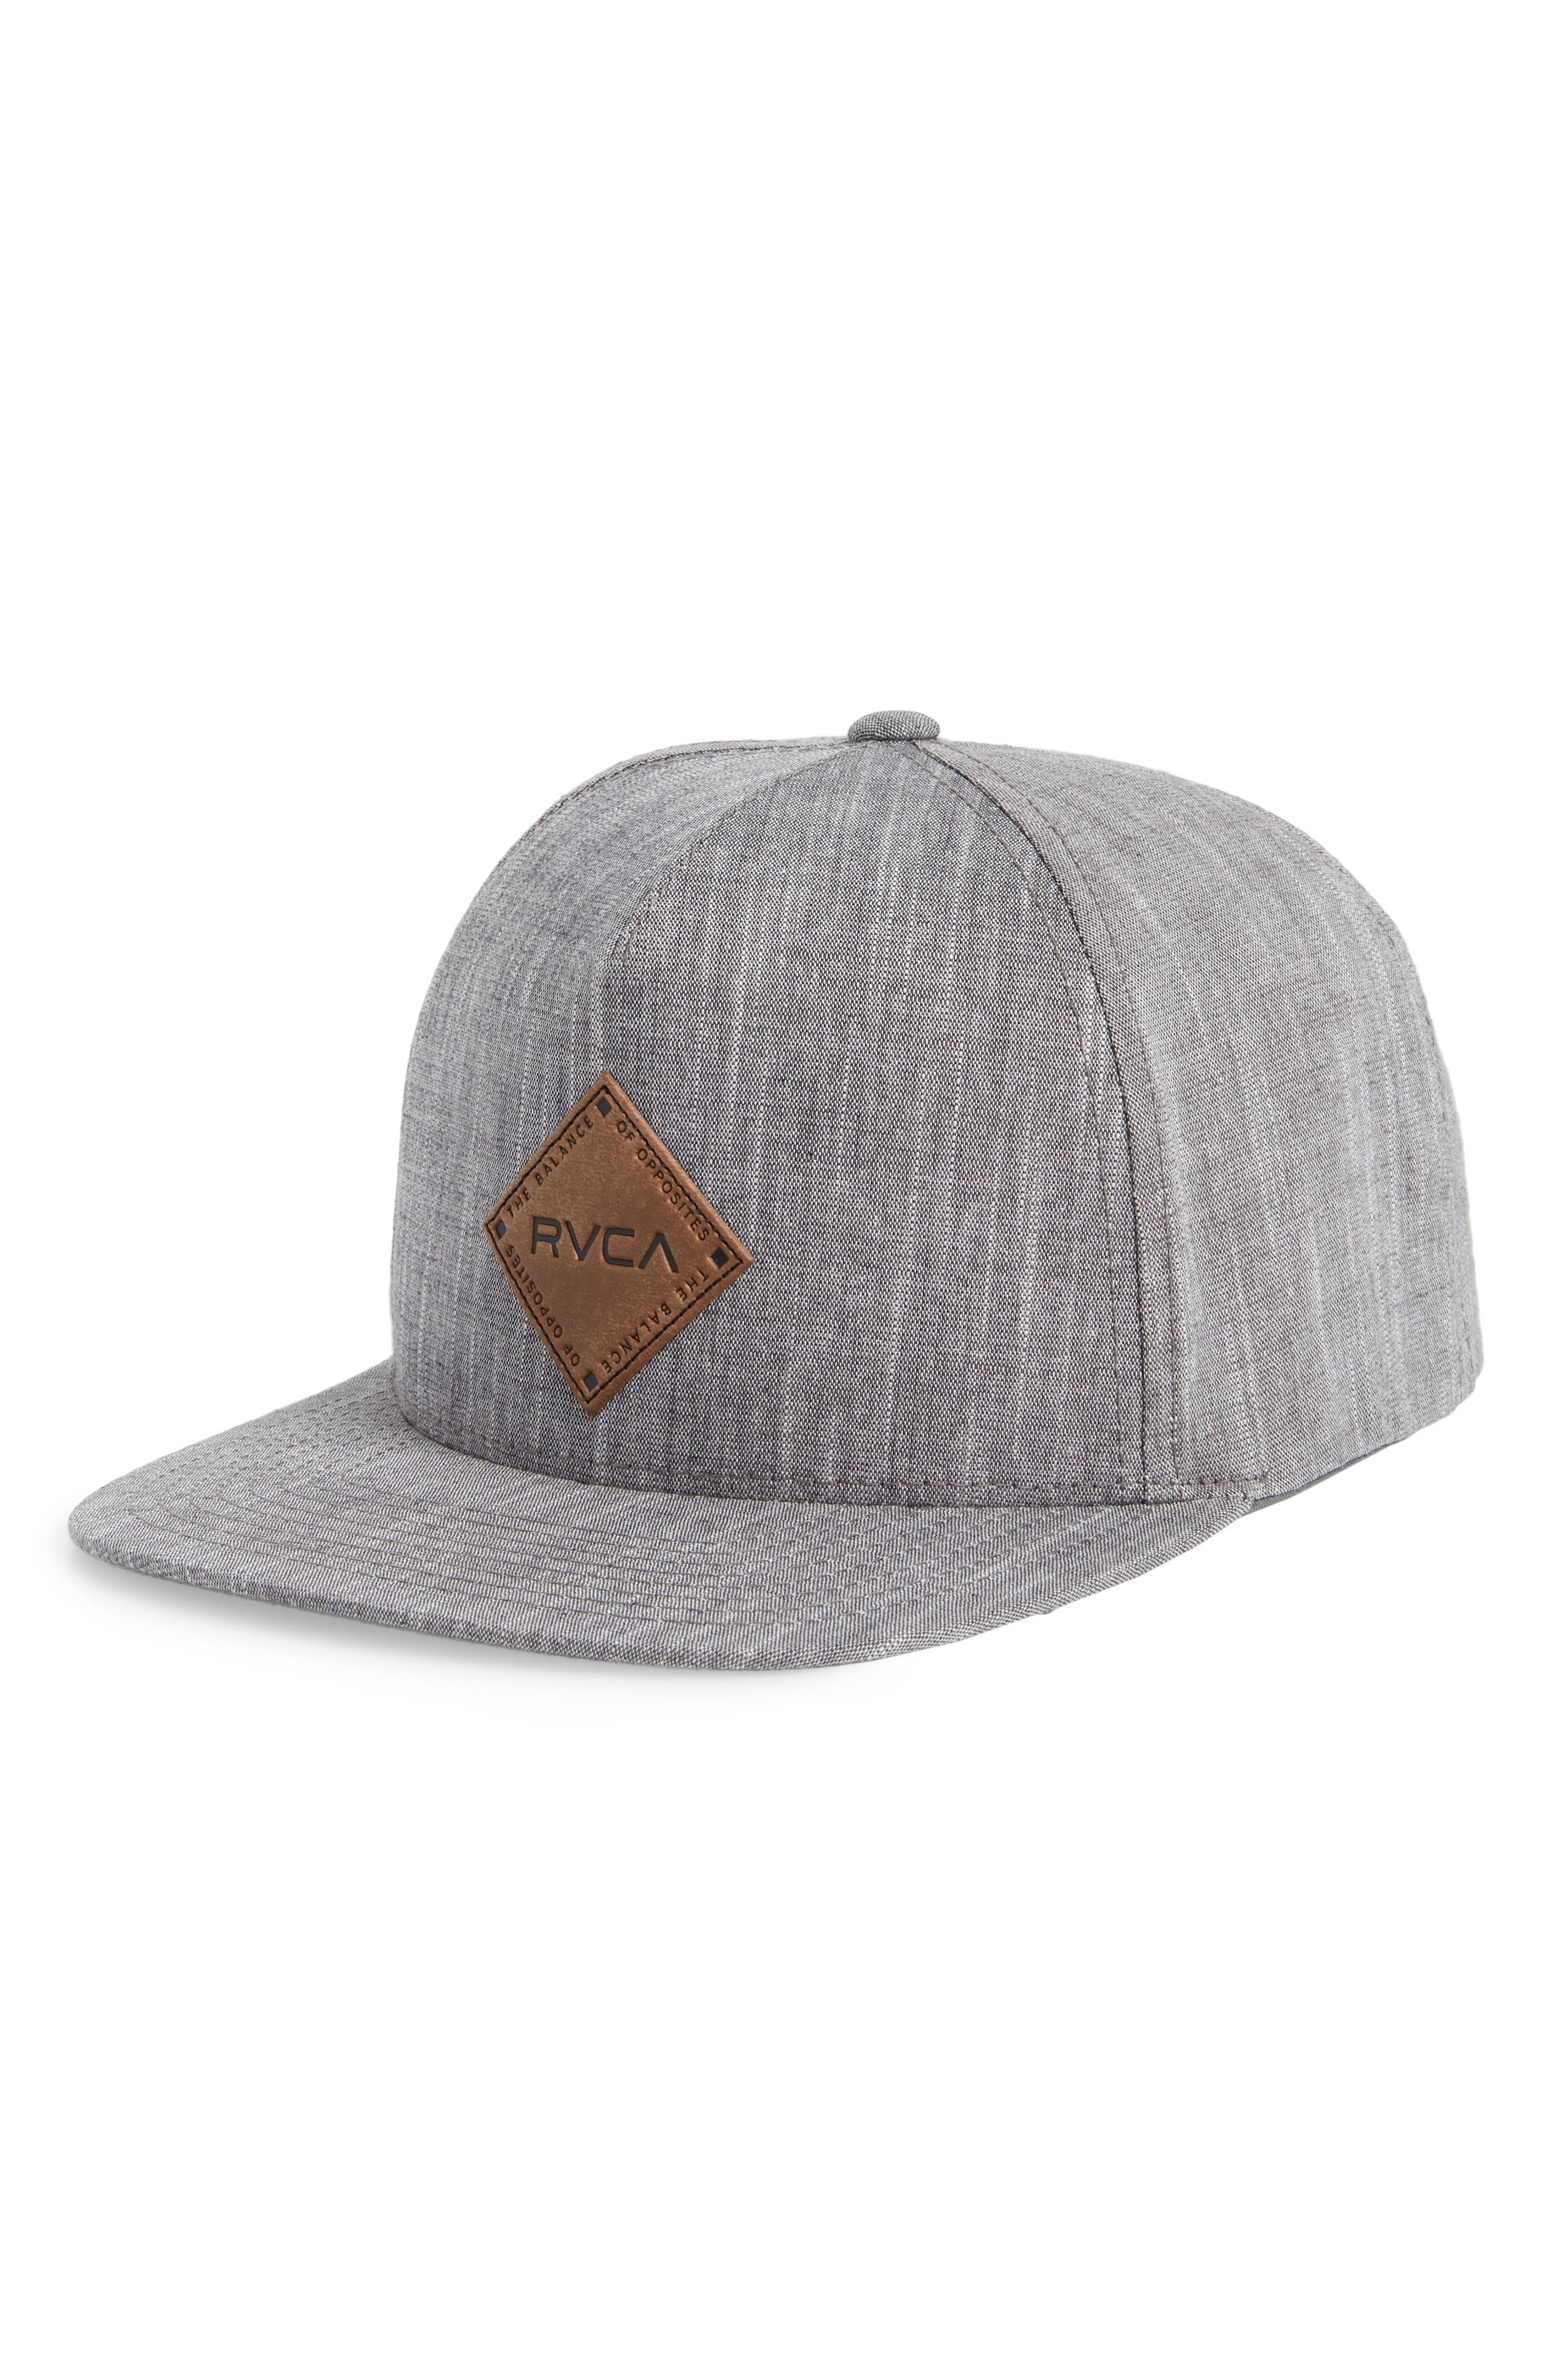 Finley Snapback Cap,                         Main,                         color, Black Heather